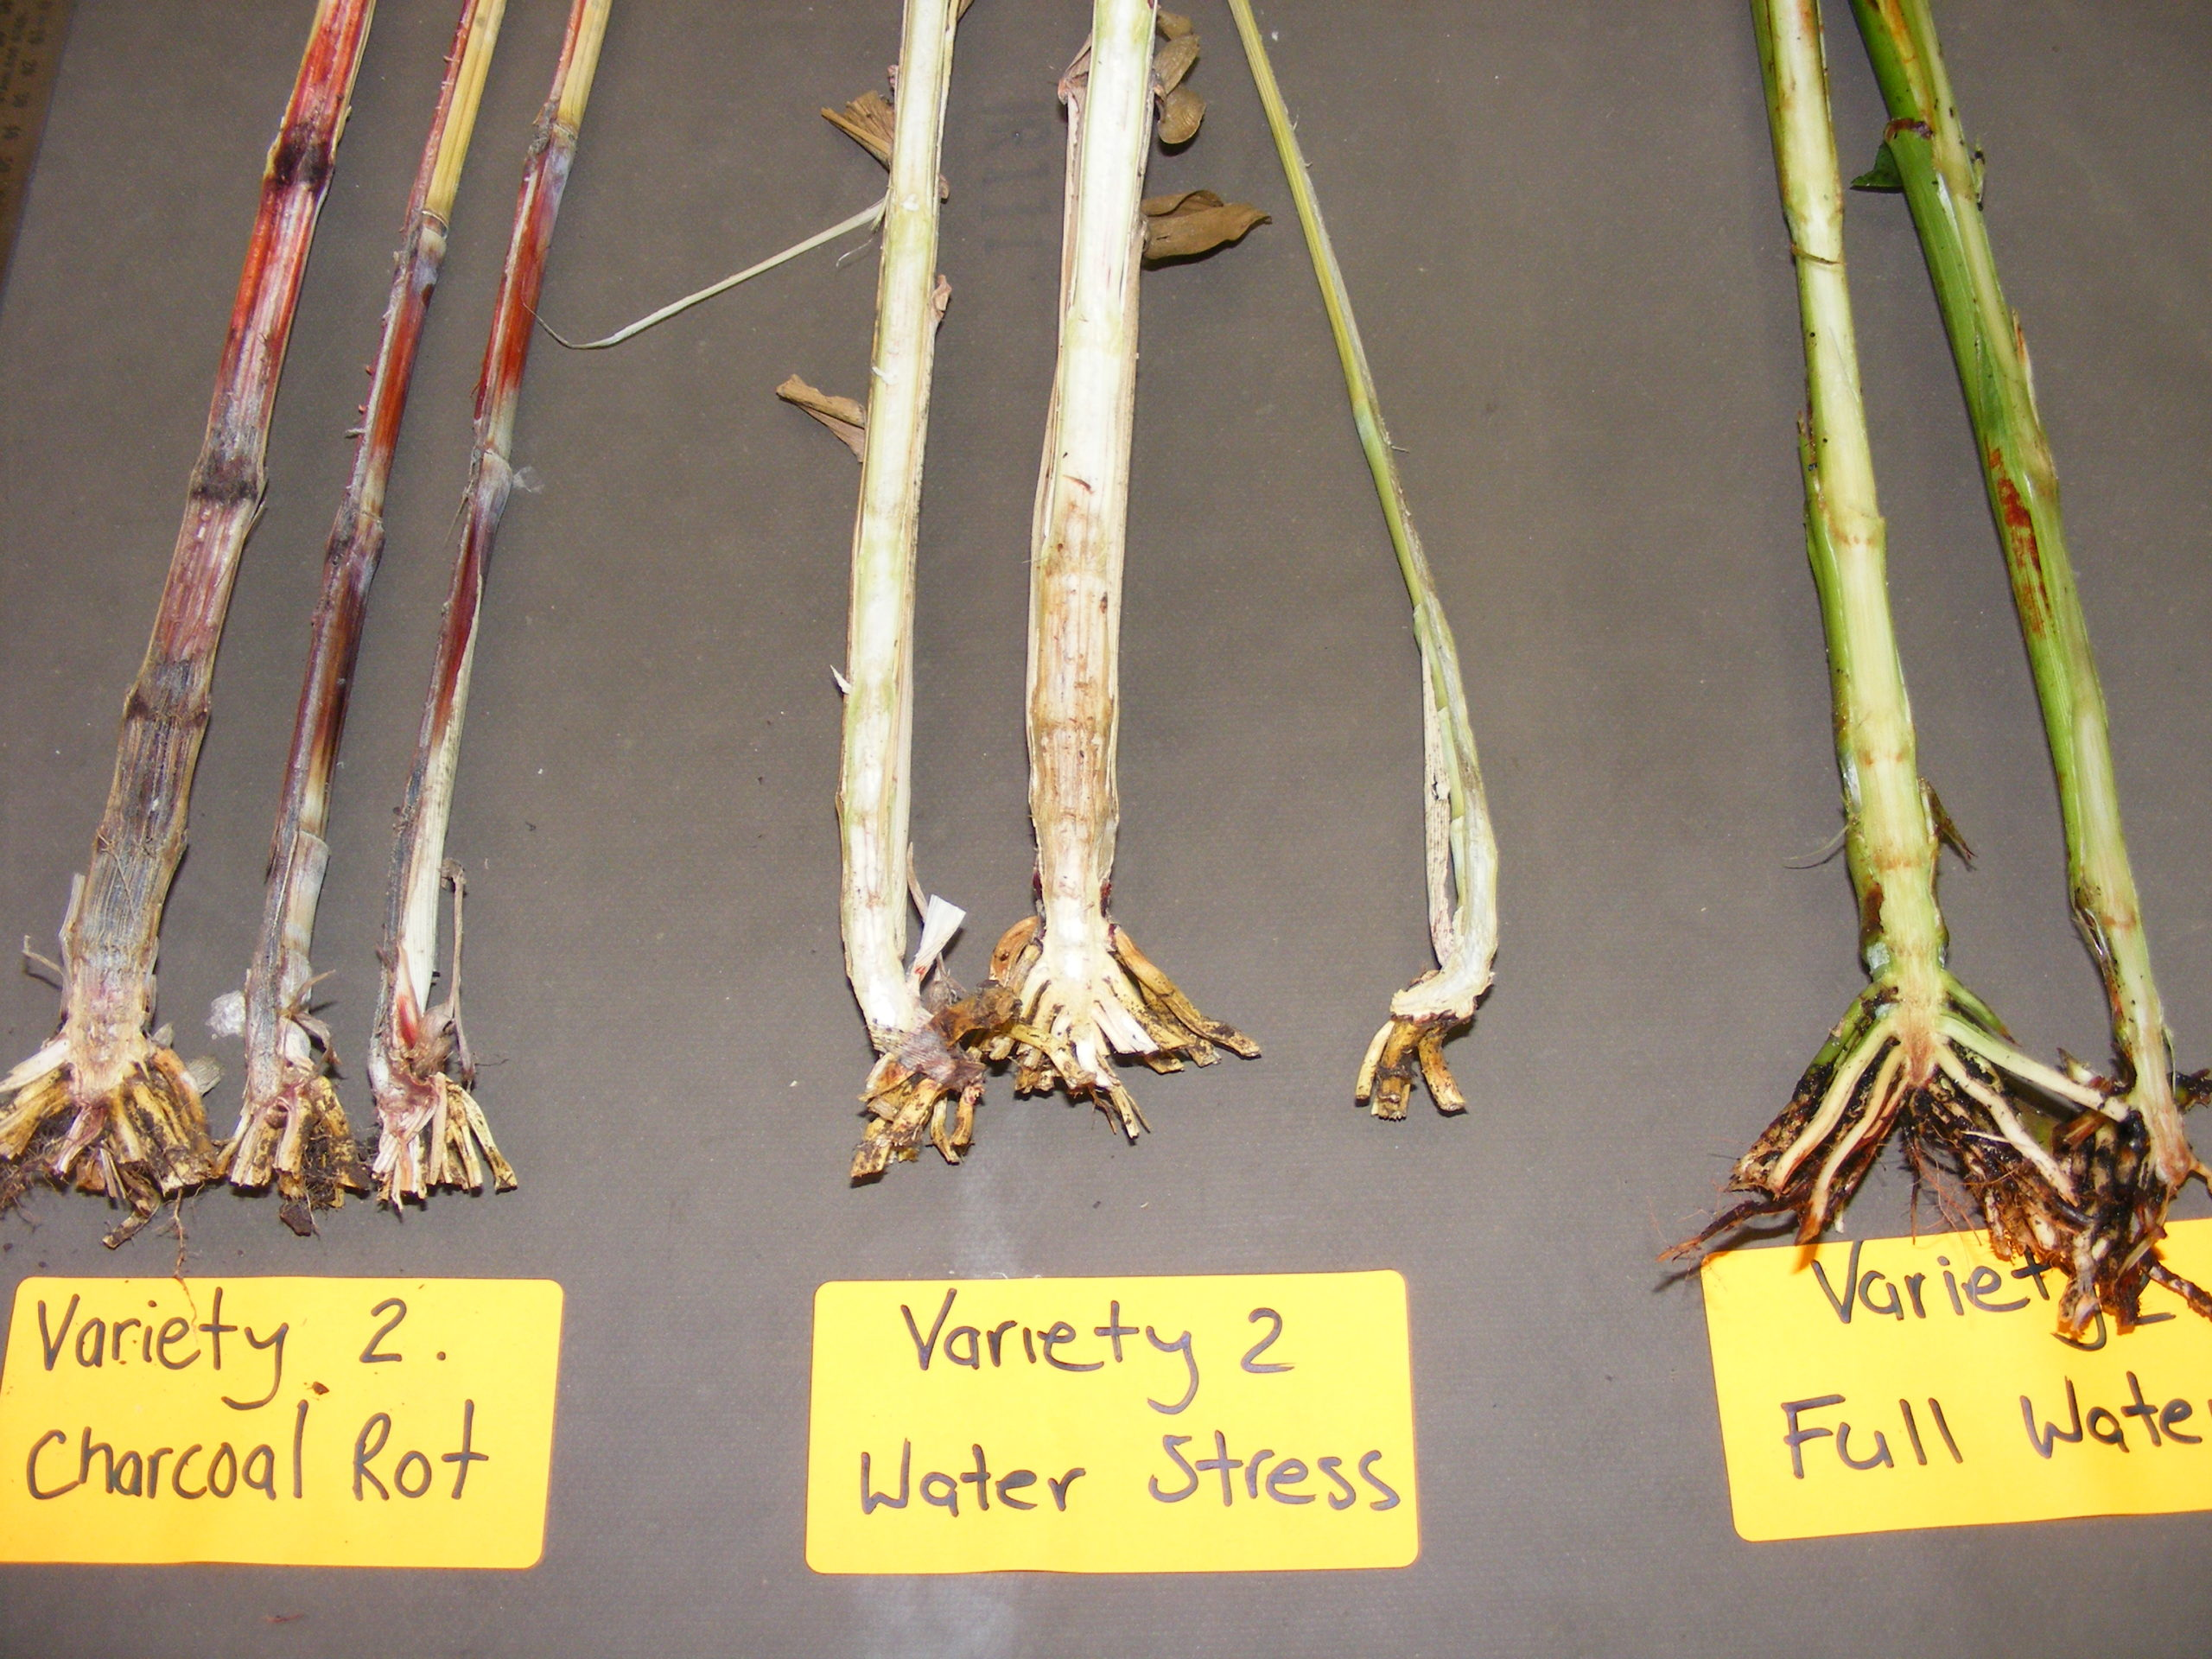 typical charcoal rot symptons (sorghum)